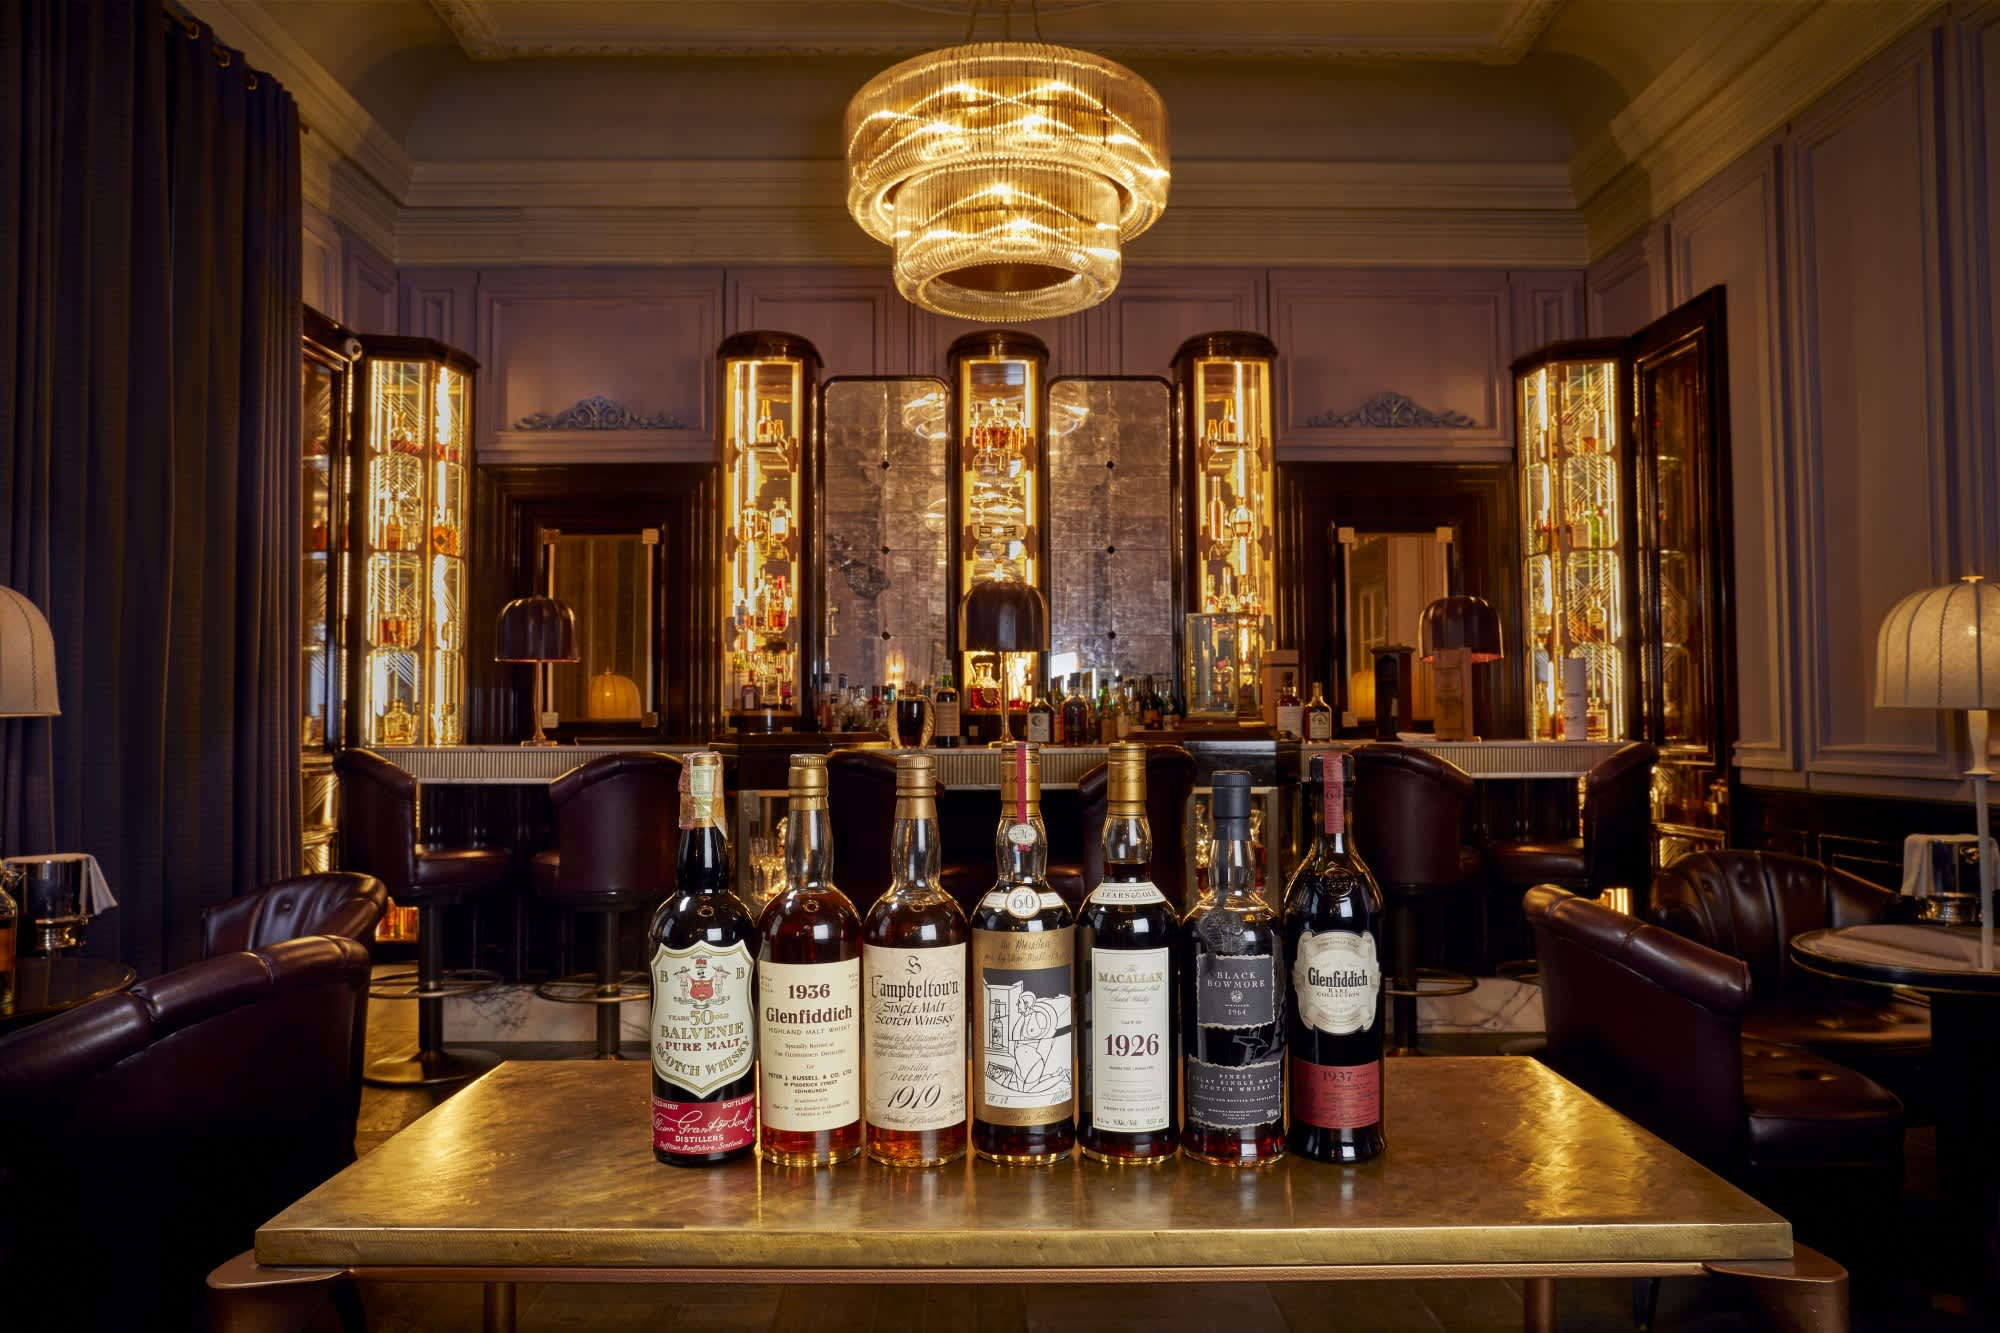 Here's what $10 million worth of rare whisky looks like